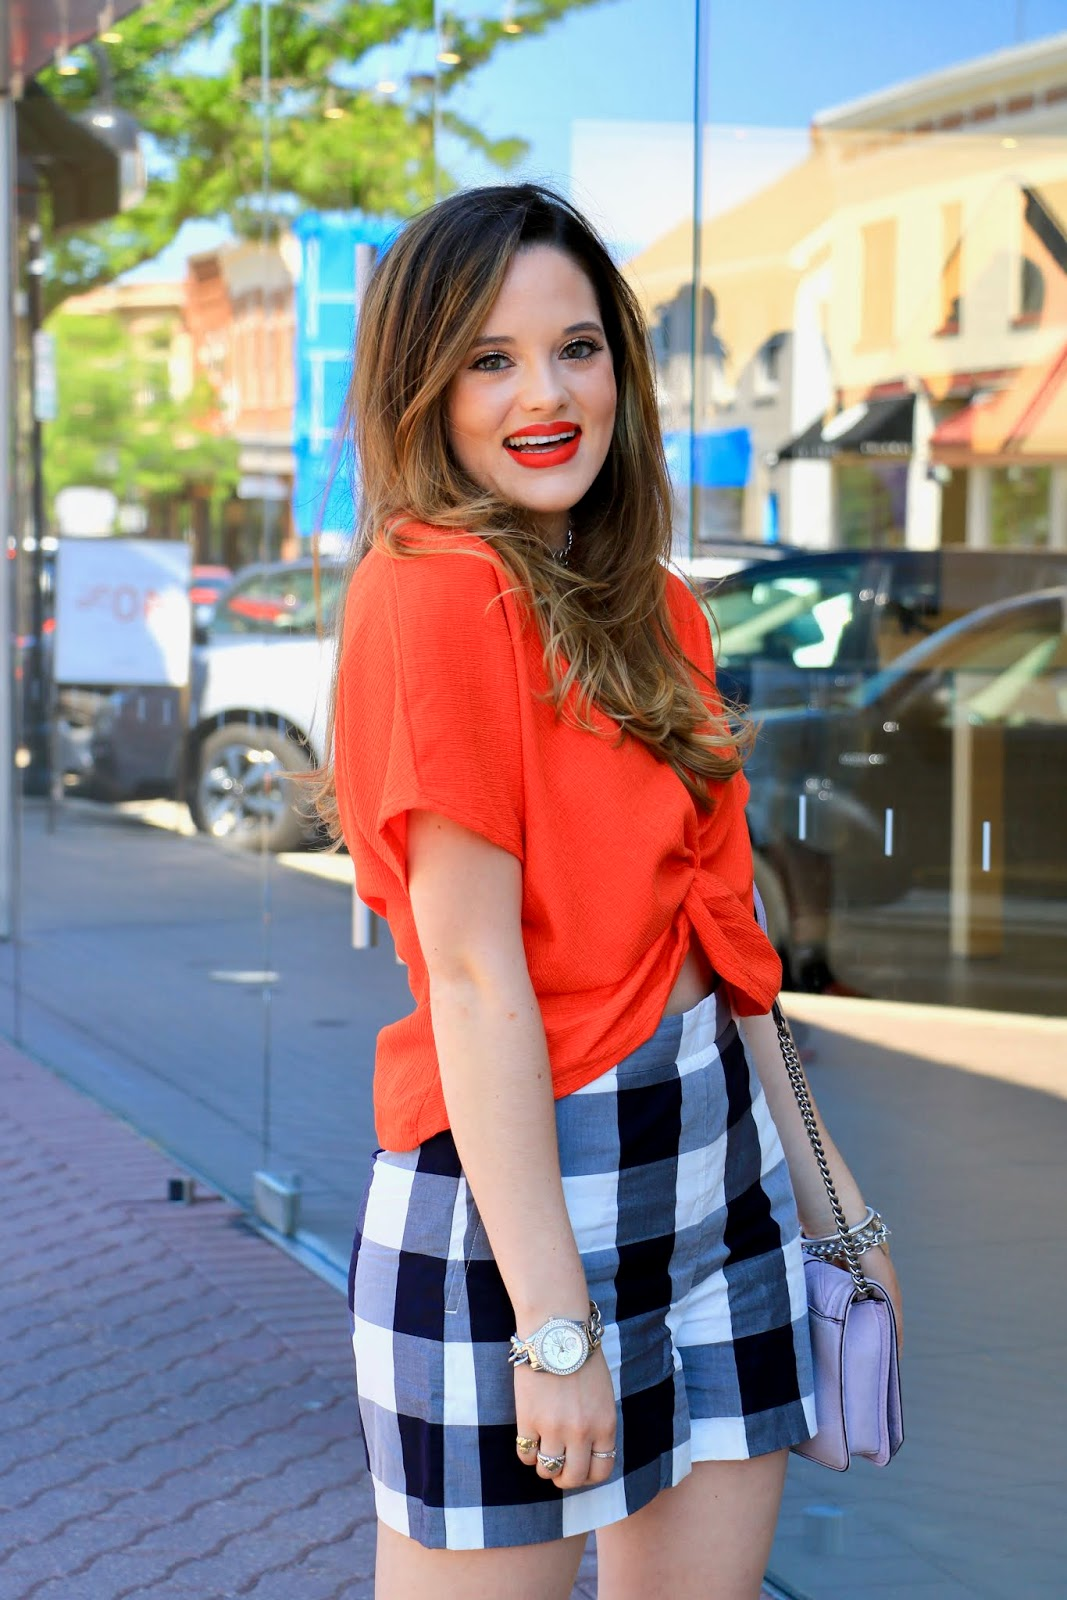 Nyc fashion blogger of Kat's Fashion Fix, Kathleen Harper, wearing plaid shorts in the summer